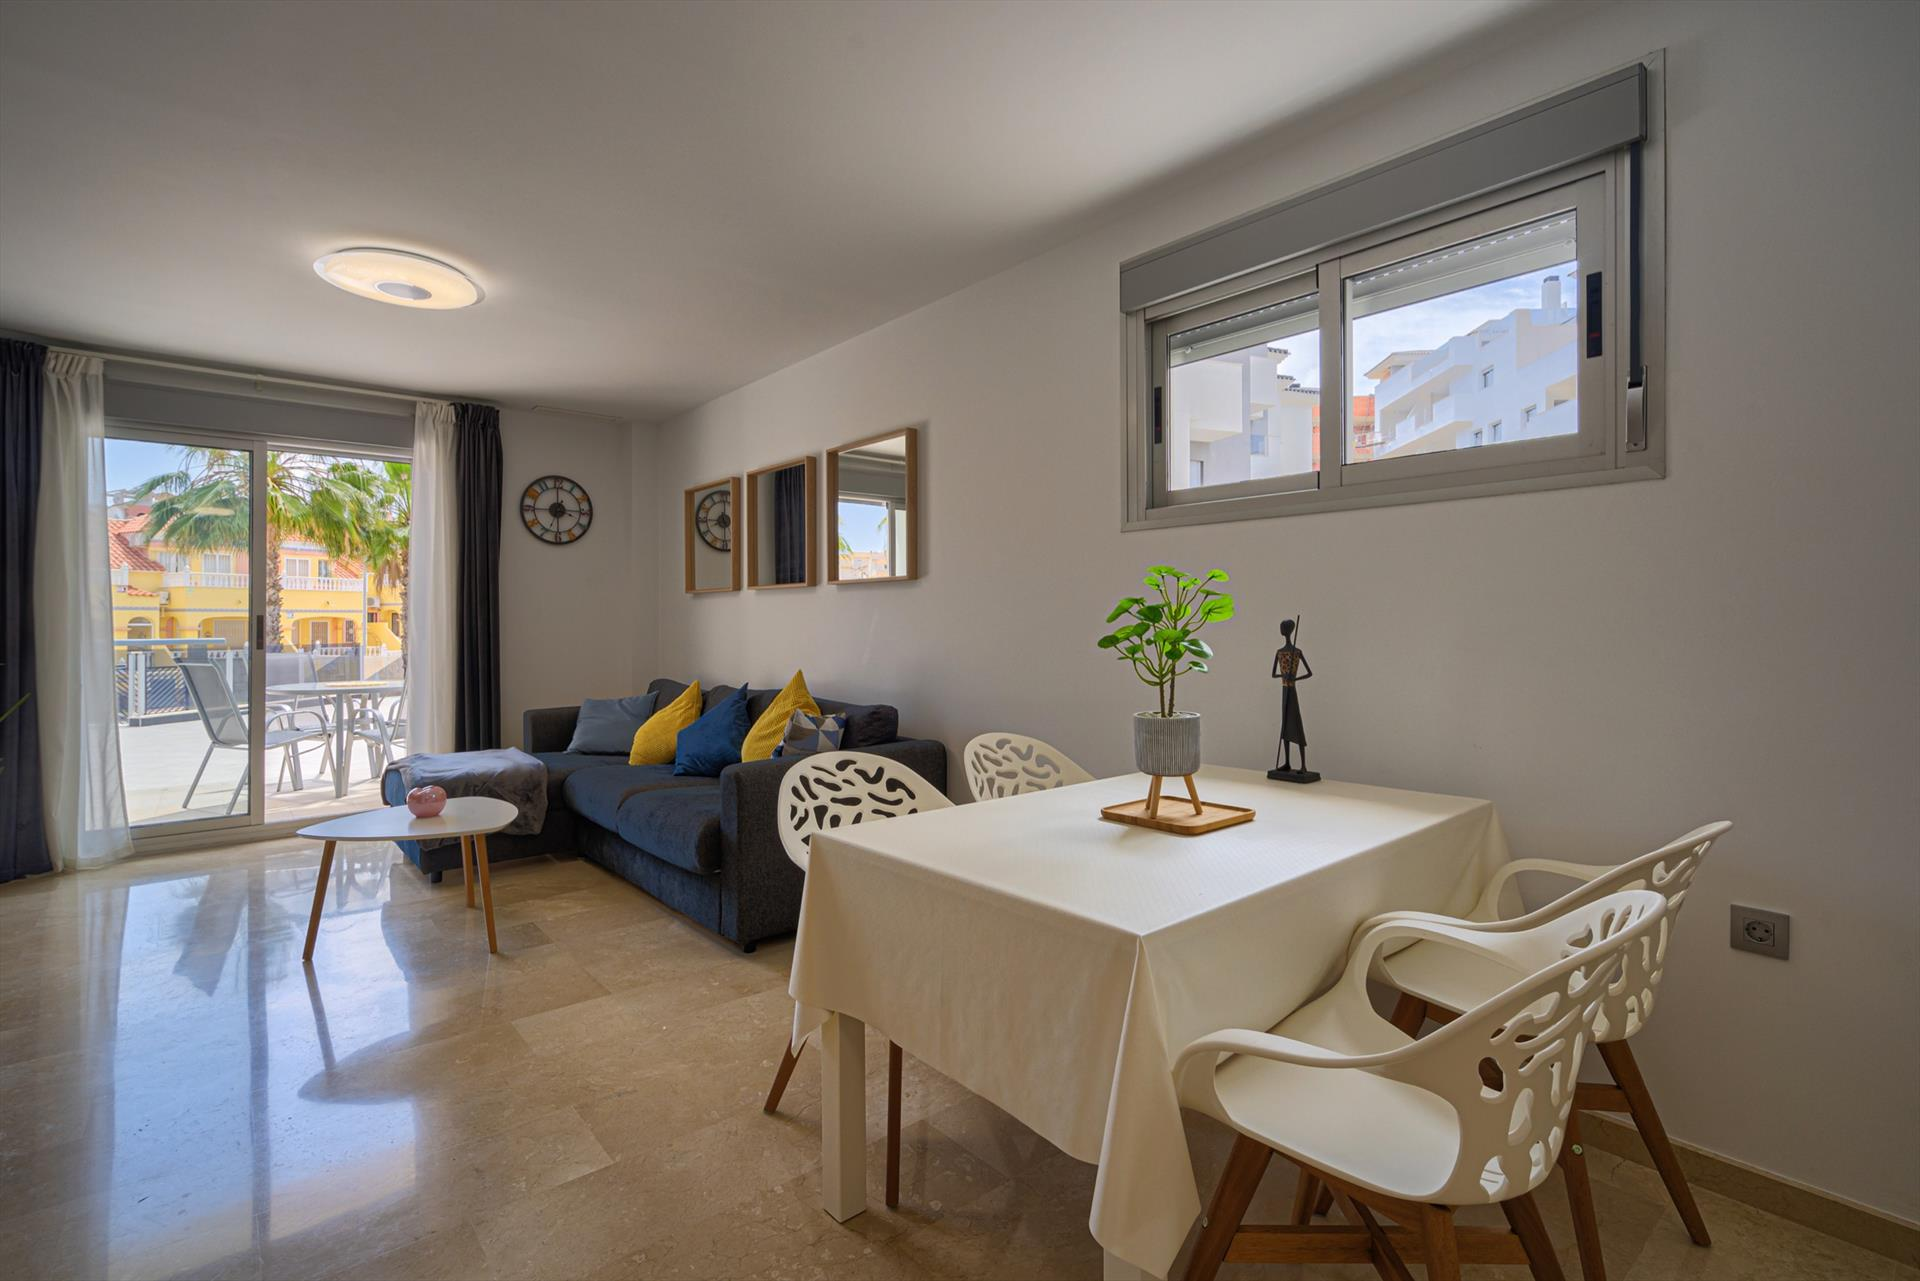 El Girasol,Modern apartment in Orihuela Costa, on the Costa Blanca, Spain  with communal pool for 4 persons.....